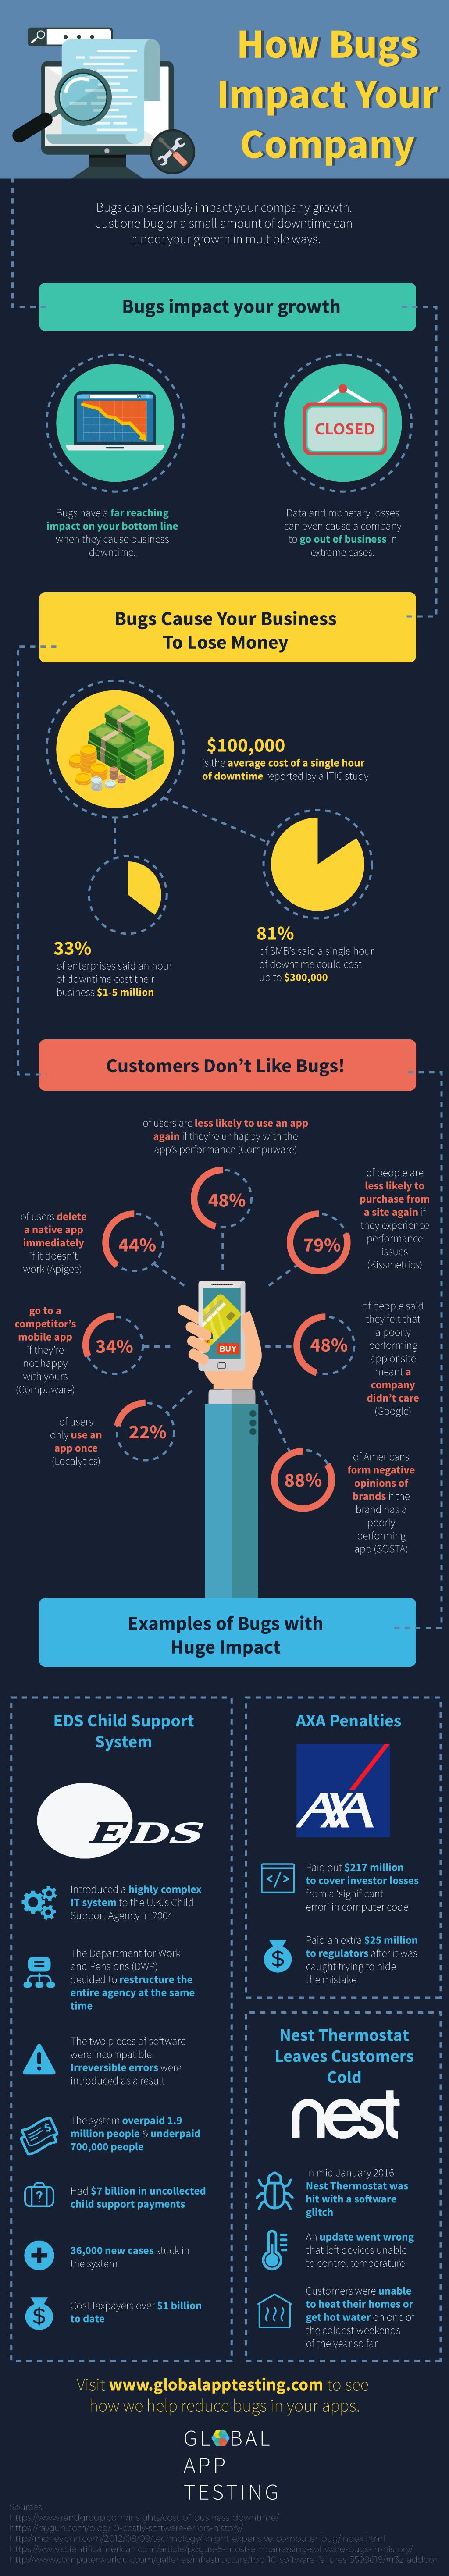 [infographic] how-bugs-impact-your-company.png